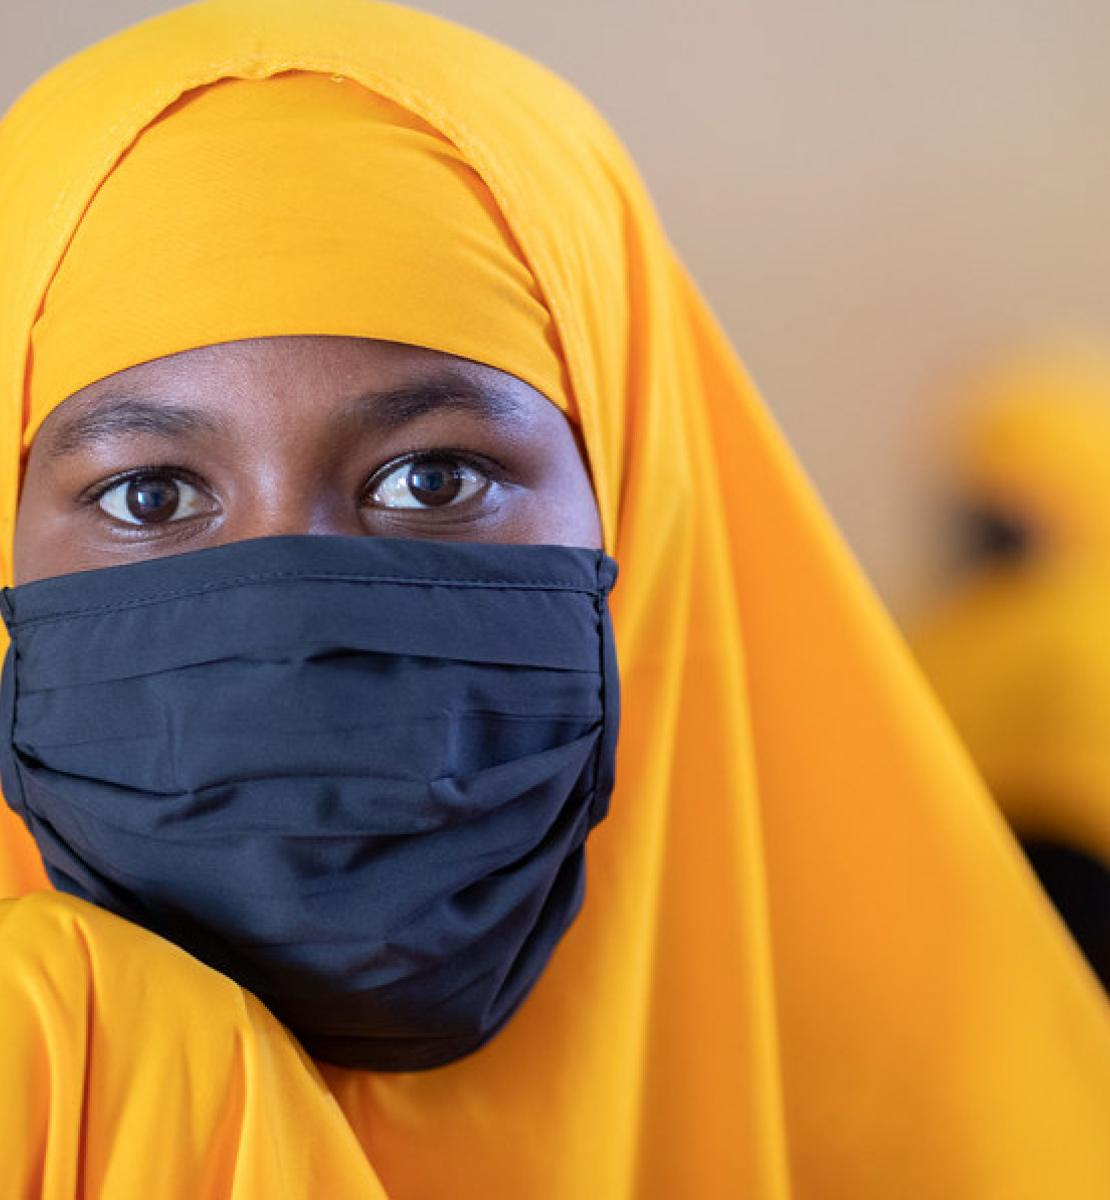 A young adolescent girl wearing a yellow headdress and black mask looks strikingly at the camera.